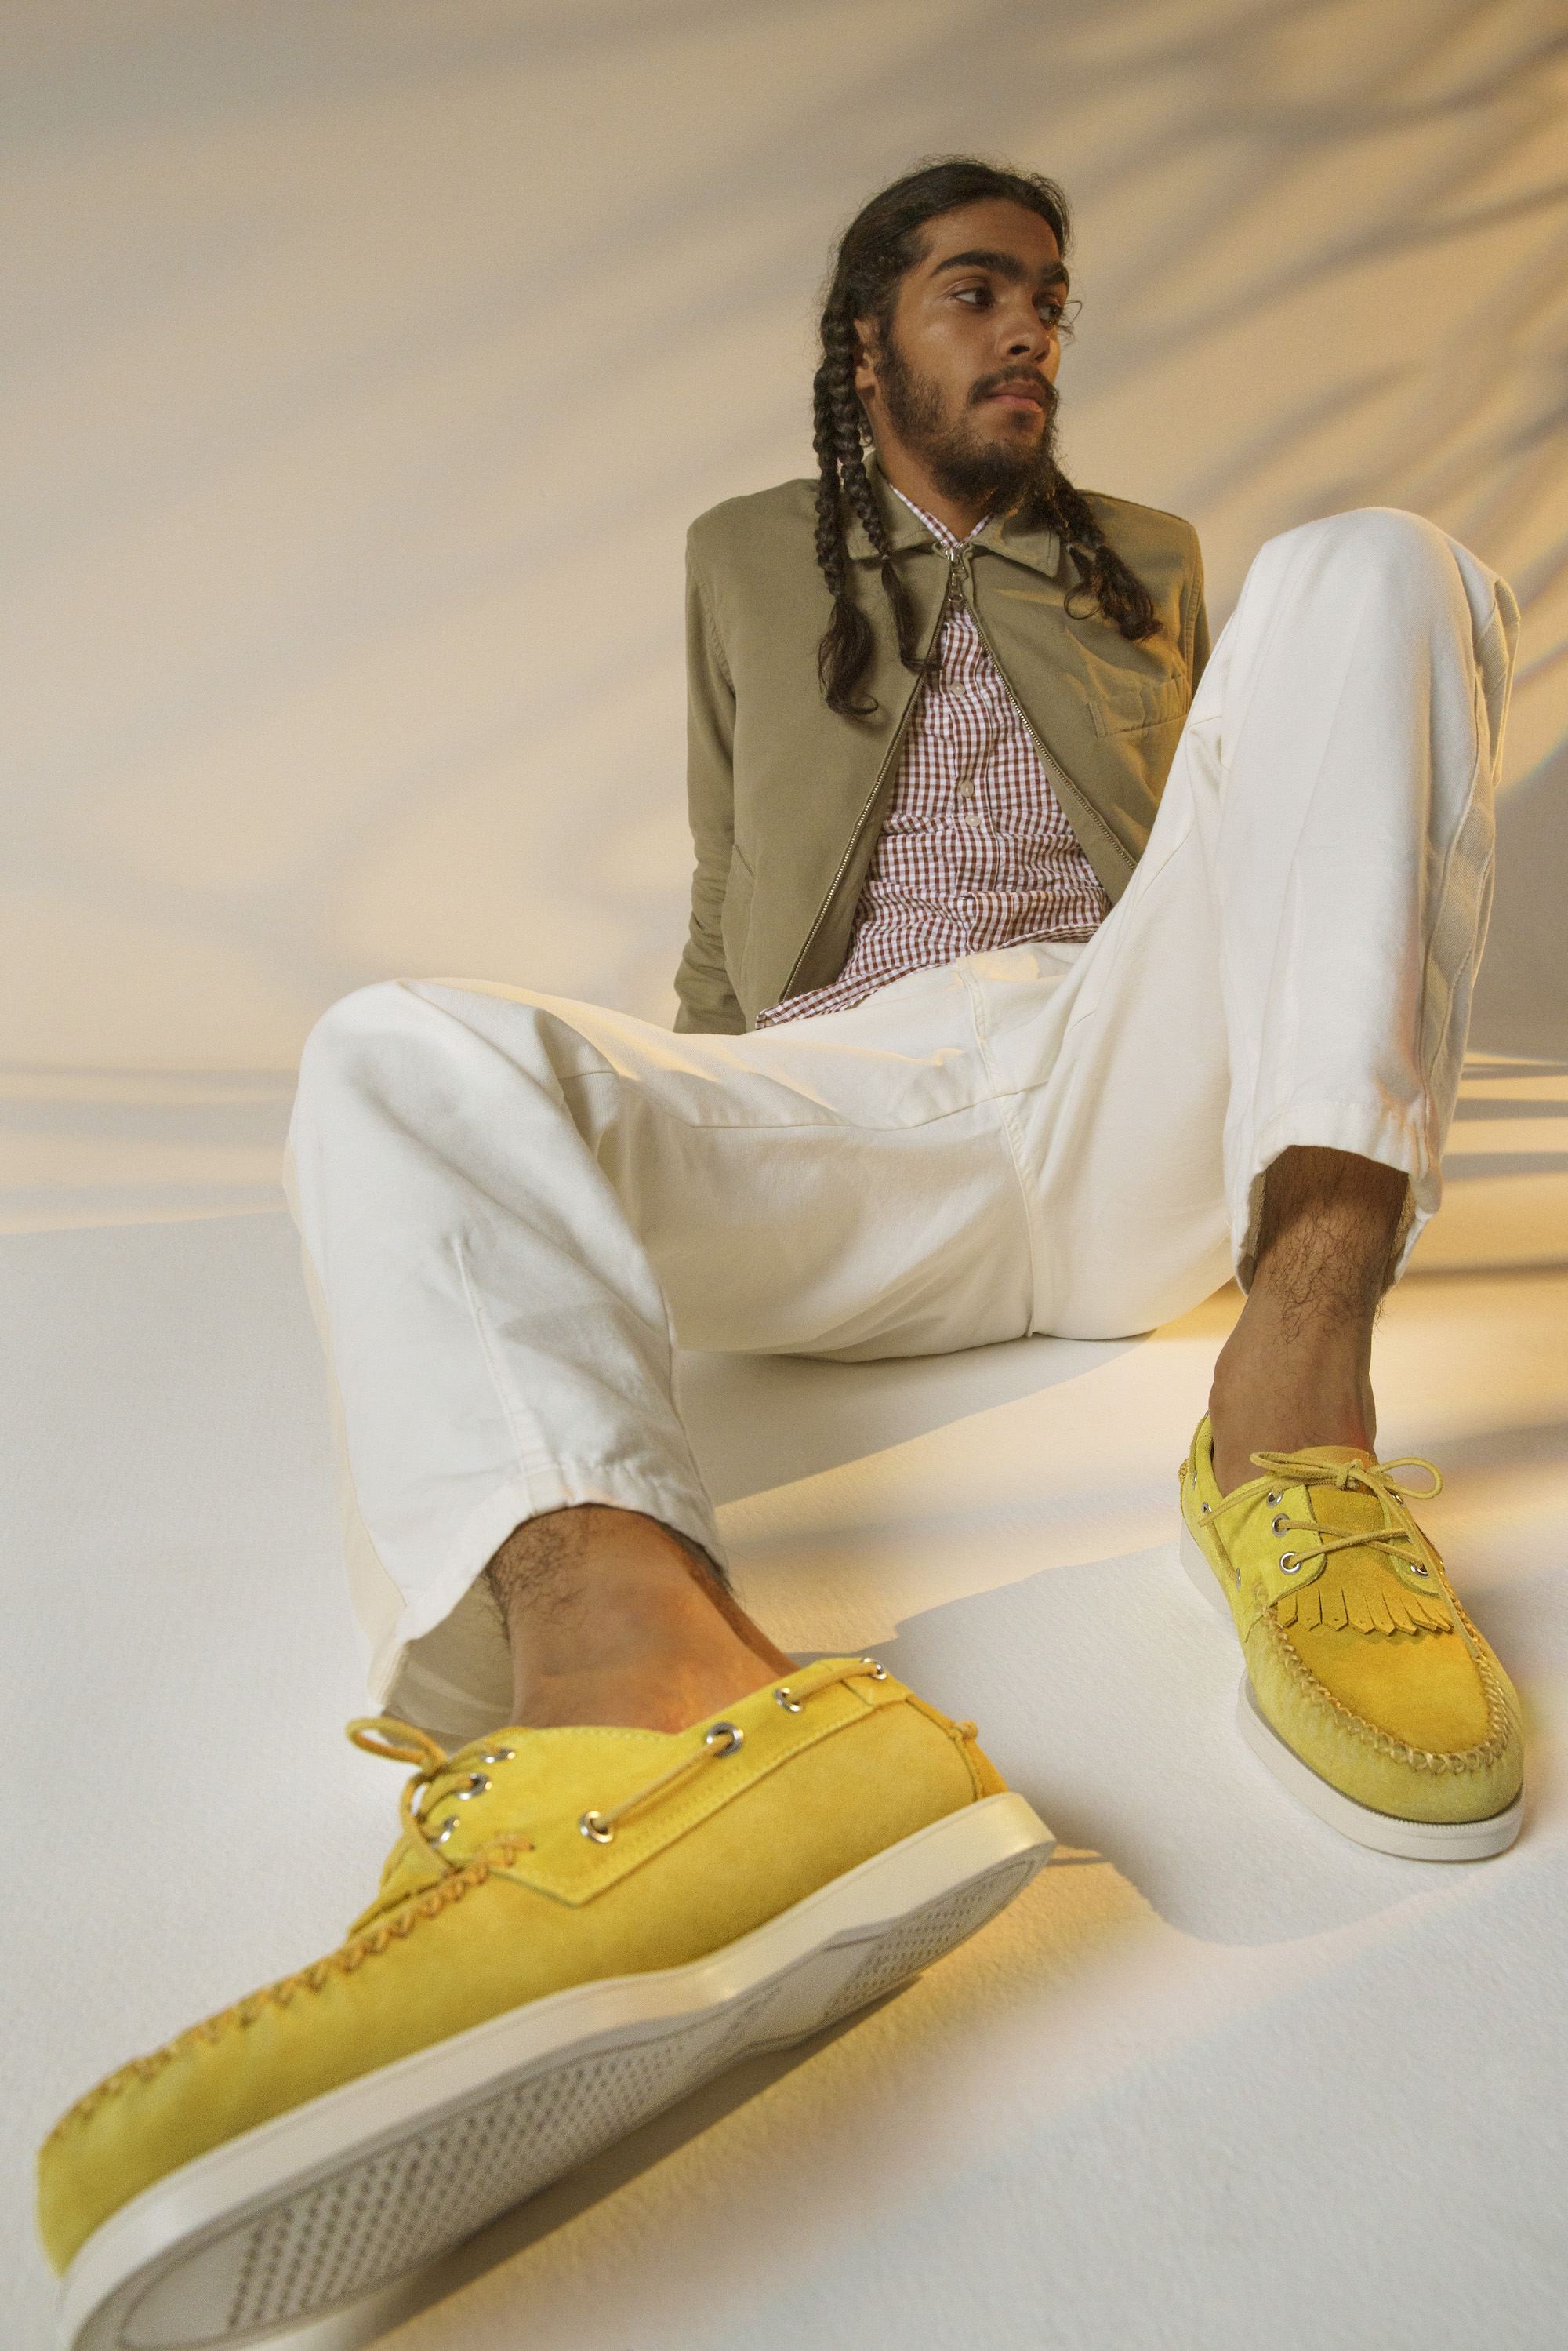 Universal x sabago collection for SS20 yellow portland boat shoes